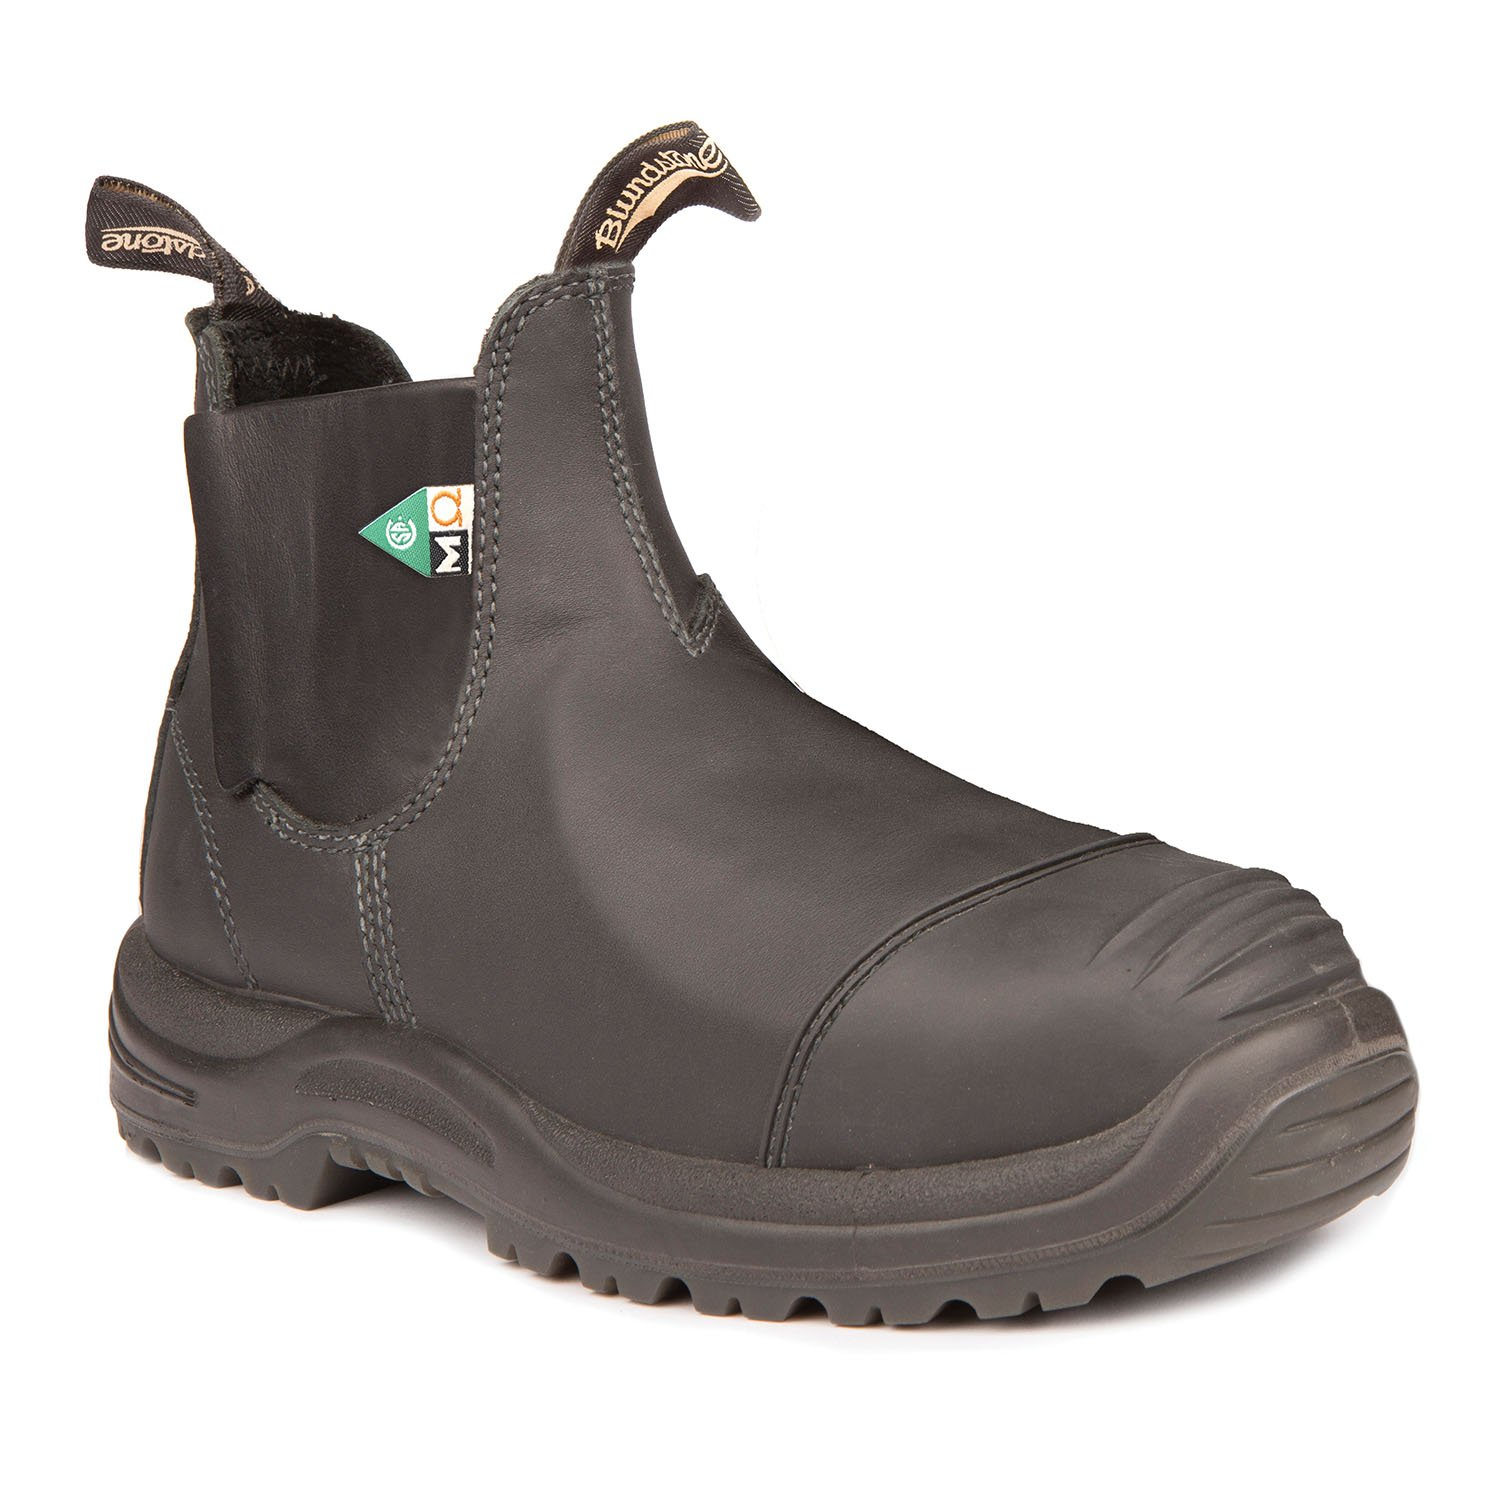 Blundstone 165 - Work & Safety Boot Met Guard Black-Blundstone